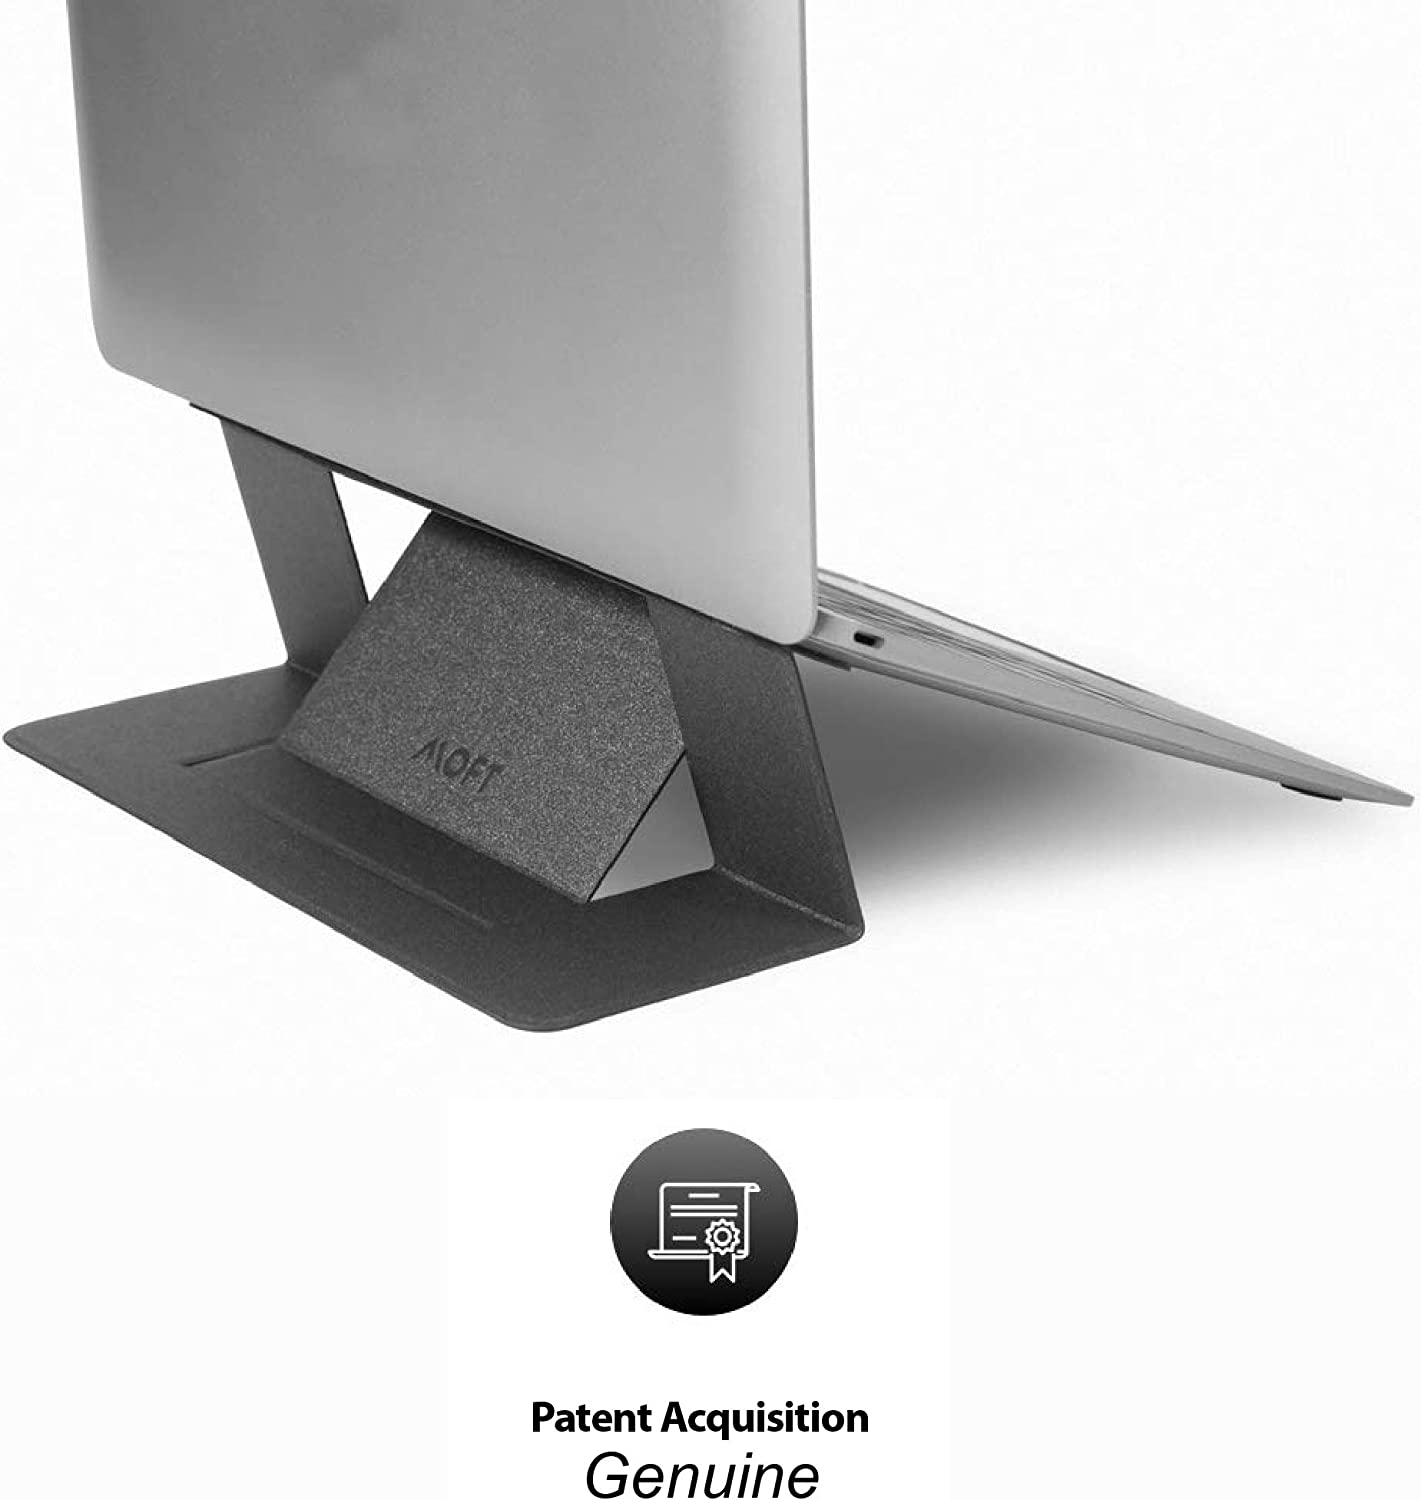 MOFT The Invisible and Adjustable Laptop Stand For Desk